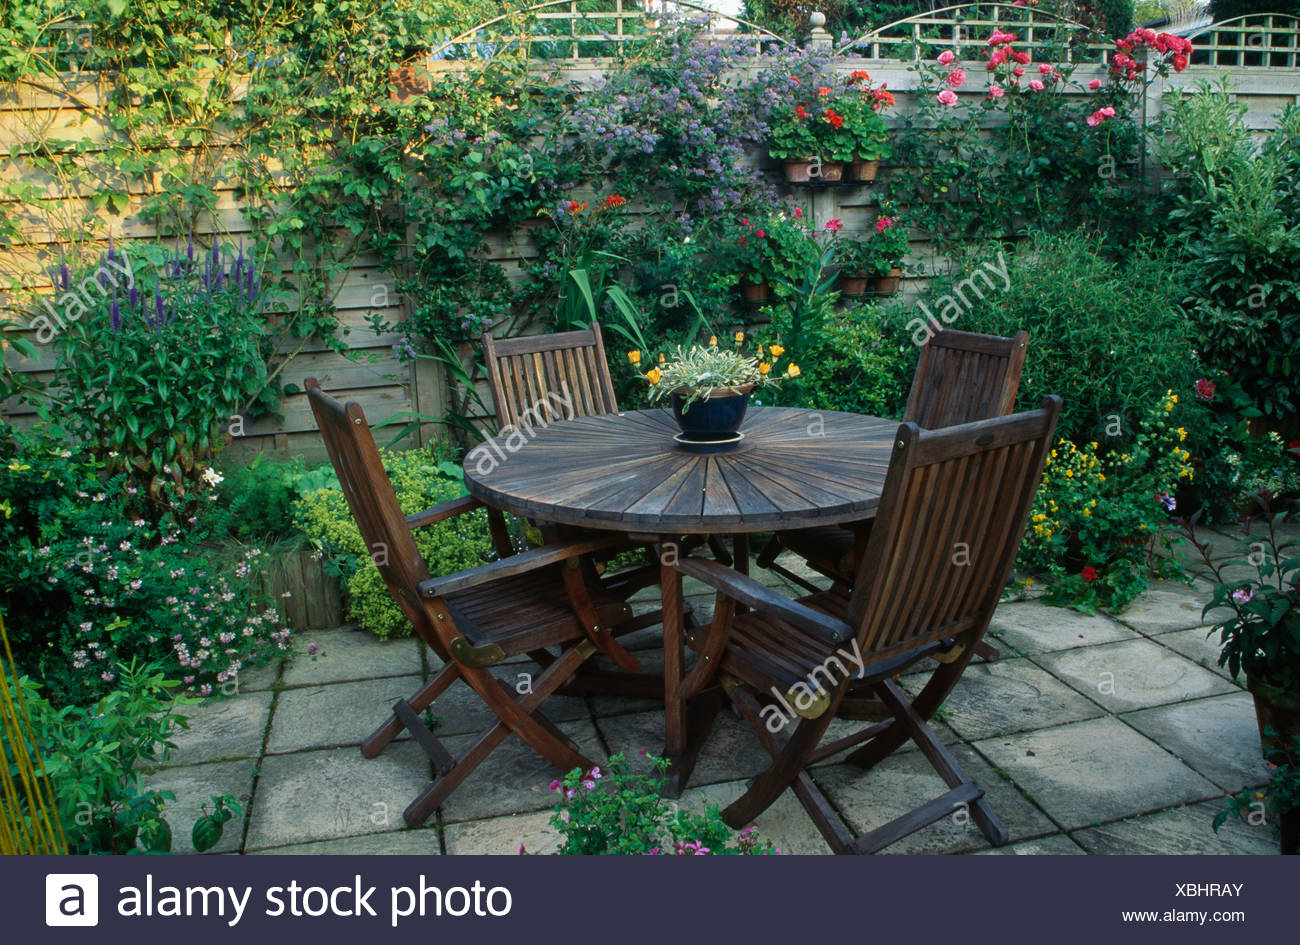 Wooden Chairs And Circular Wooden Table On Paved Patio In Country Garden In  Summer With Pots Of Annuals On Wooden Fence